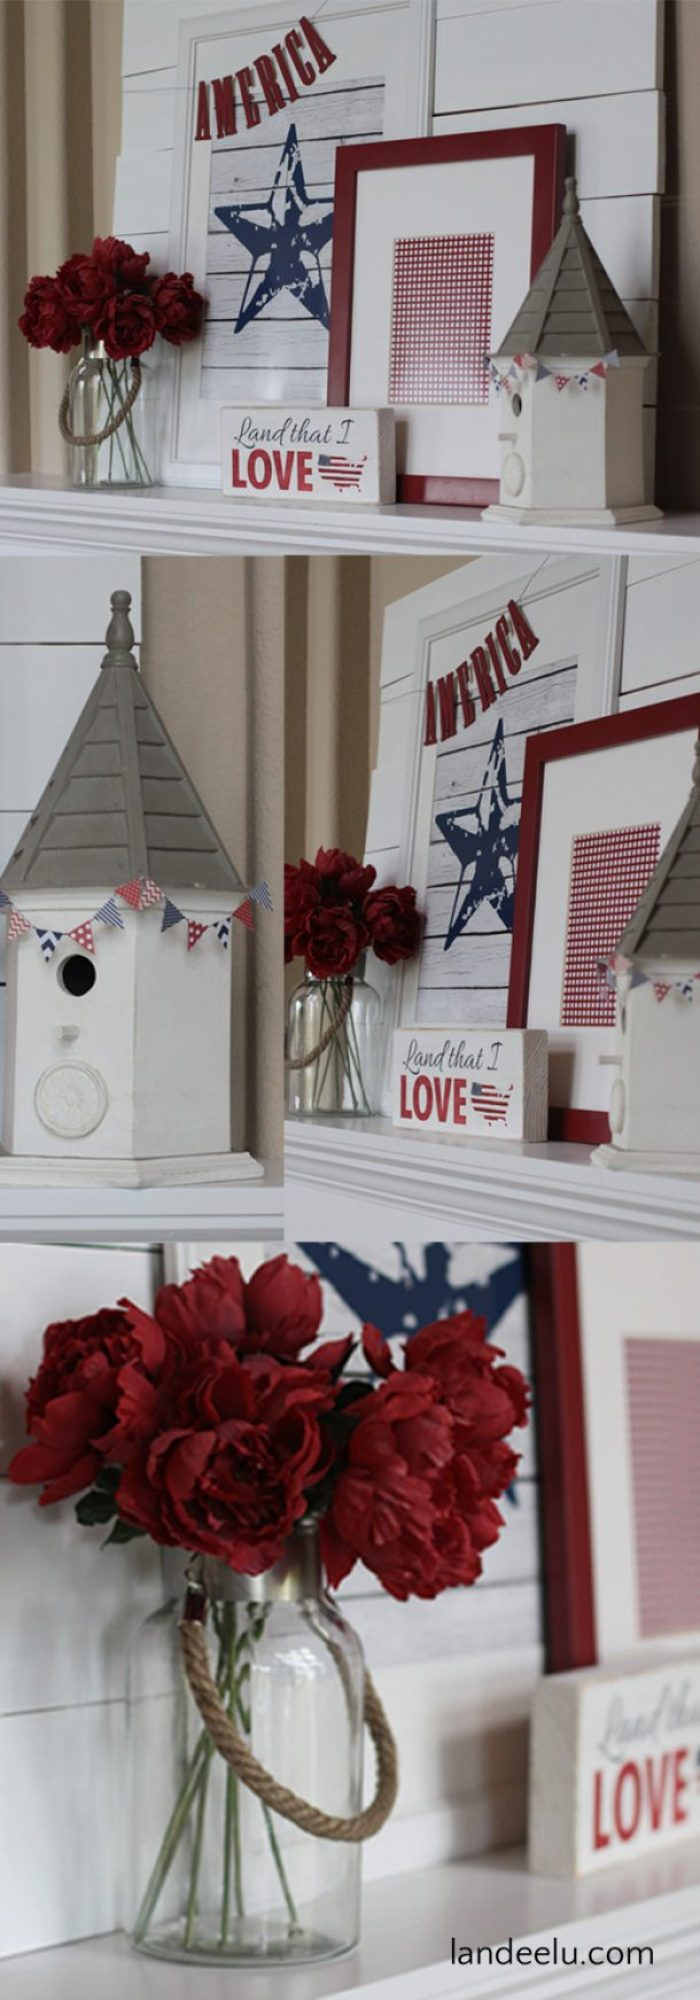 Red, White and Blue Home and Mantel Decorations Ideas and Printables | Landeelu Free printables to dress up your mantel for the Fourth of July!